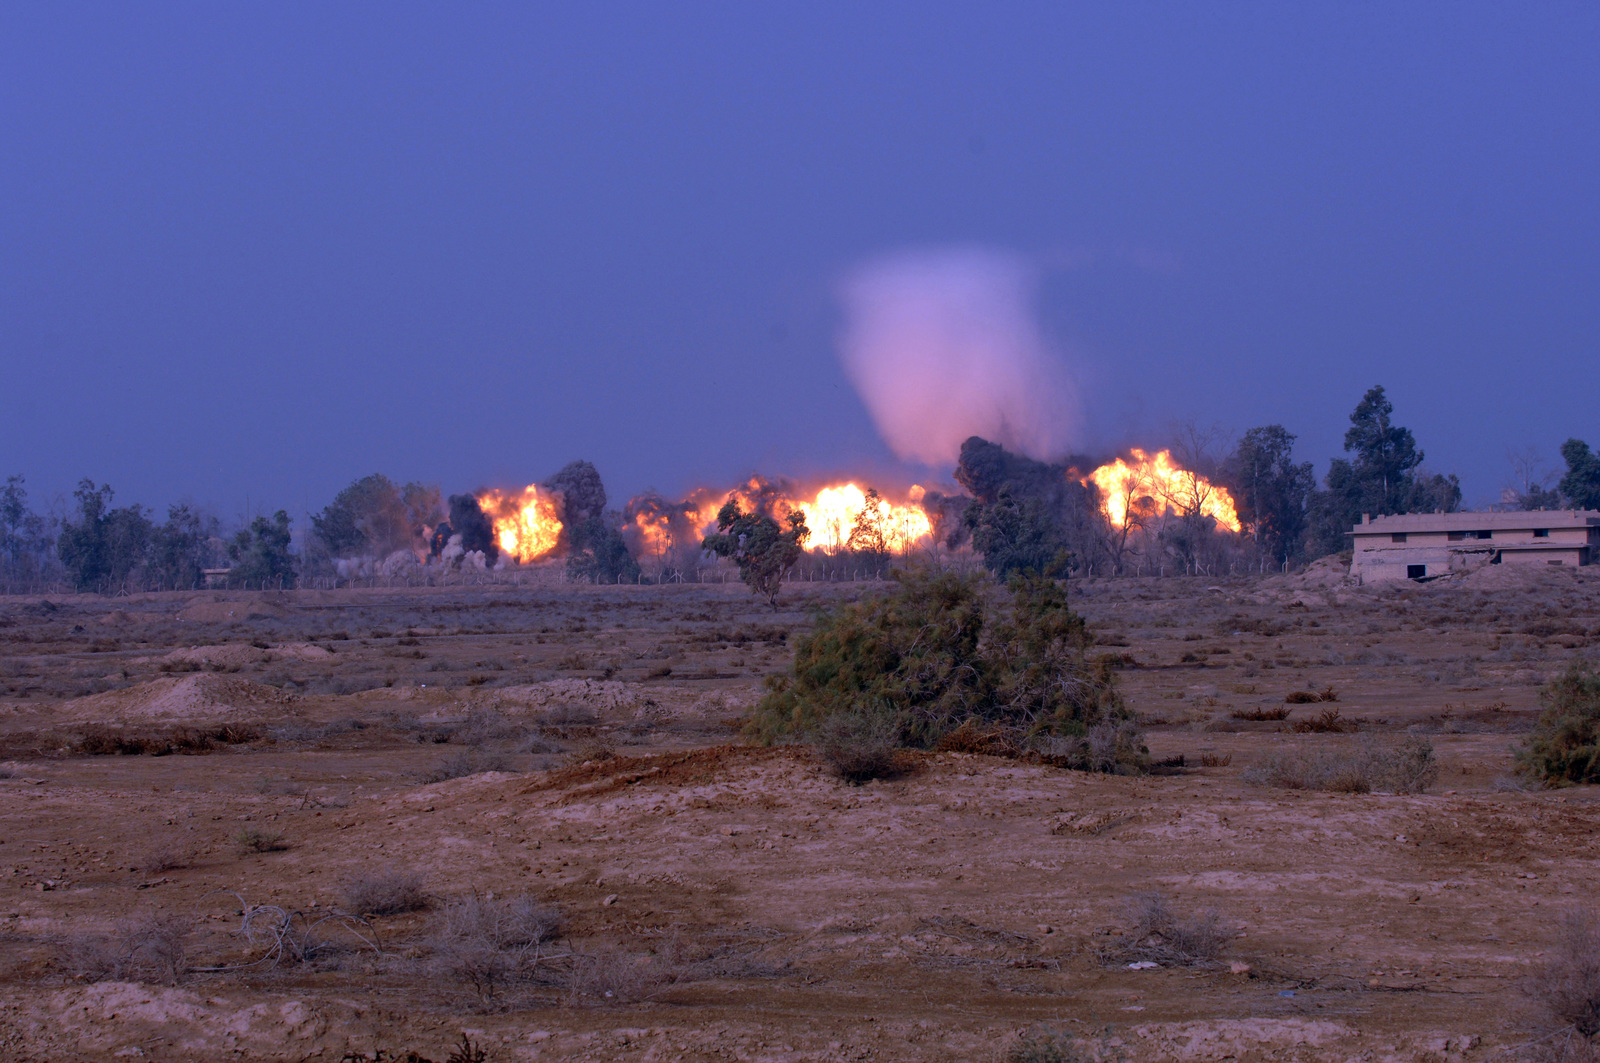 A fireball and shockwave made from the joint disposal of seven 1000 pound bombs left over from Saddam Hussein's regime. The disposal was carried out by the 710th Ordnance Company (EOD) near Taji, Iraq Dec. 16, 2005.(U.S. Army PHOTO by: PVT. Ronald Gaete) (Released)